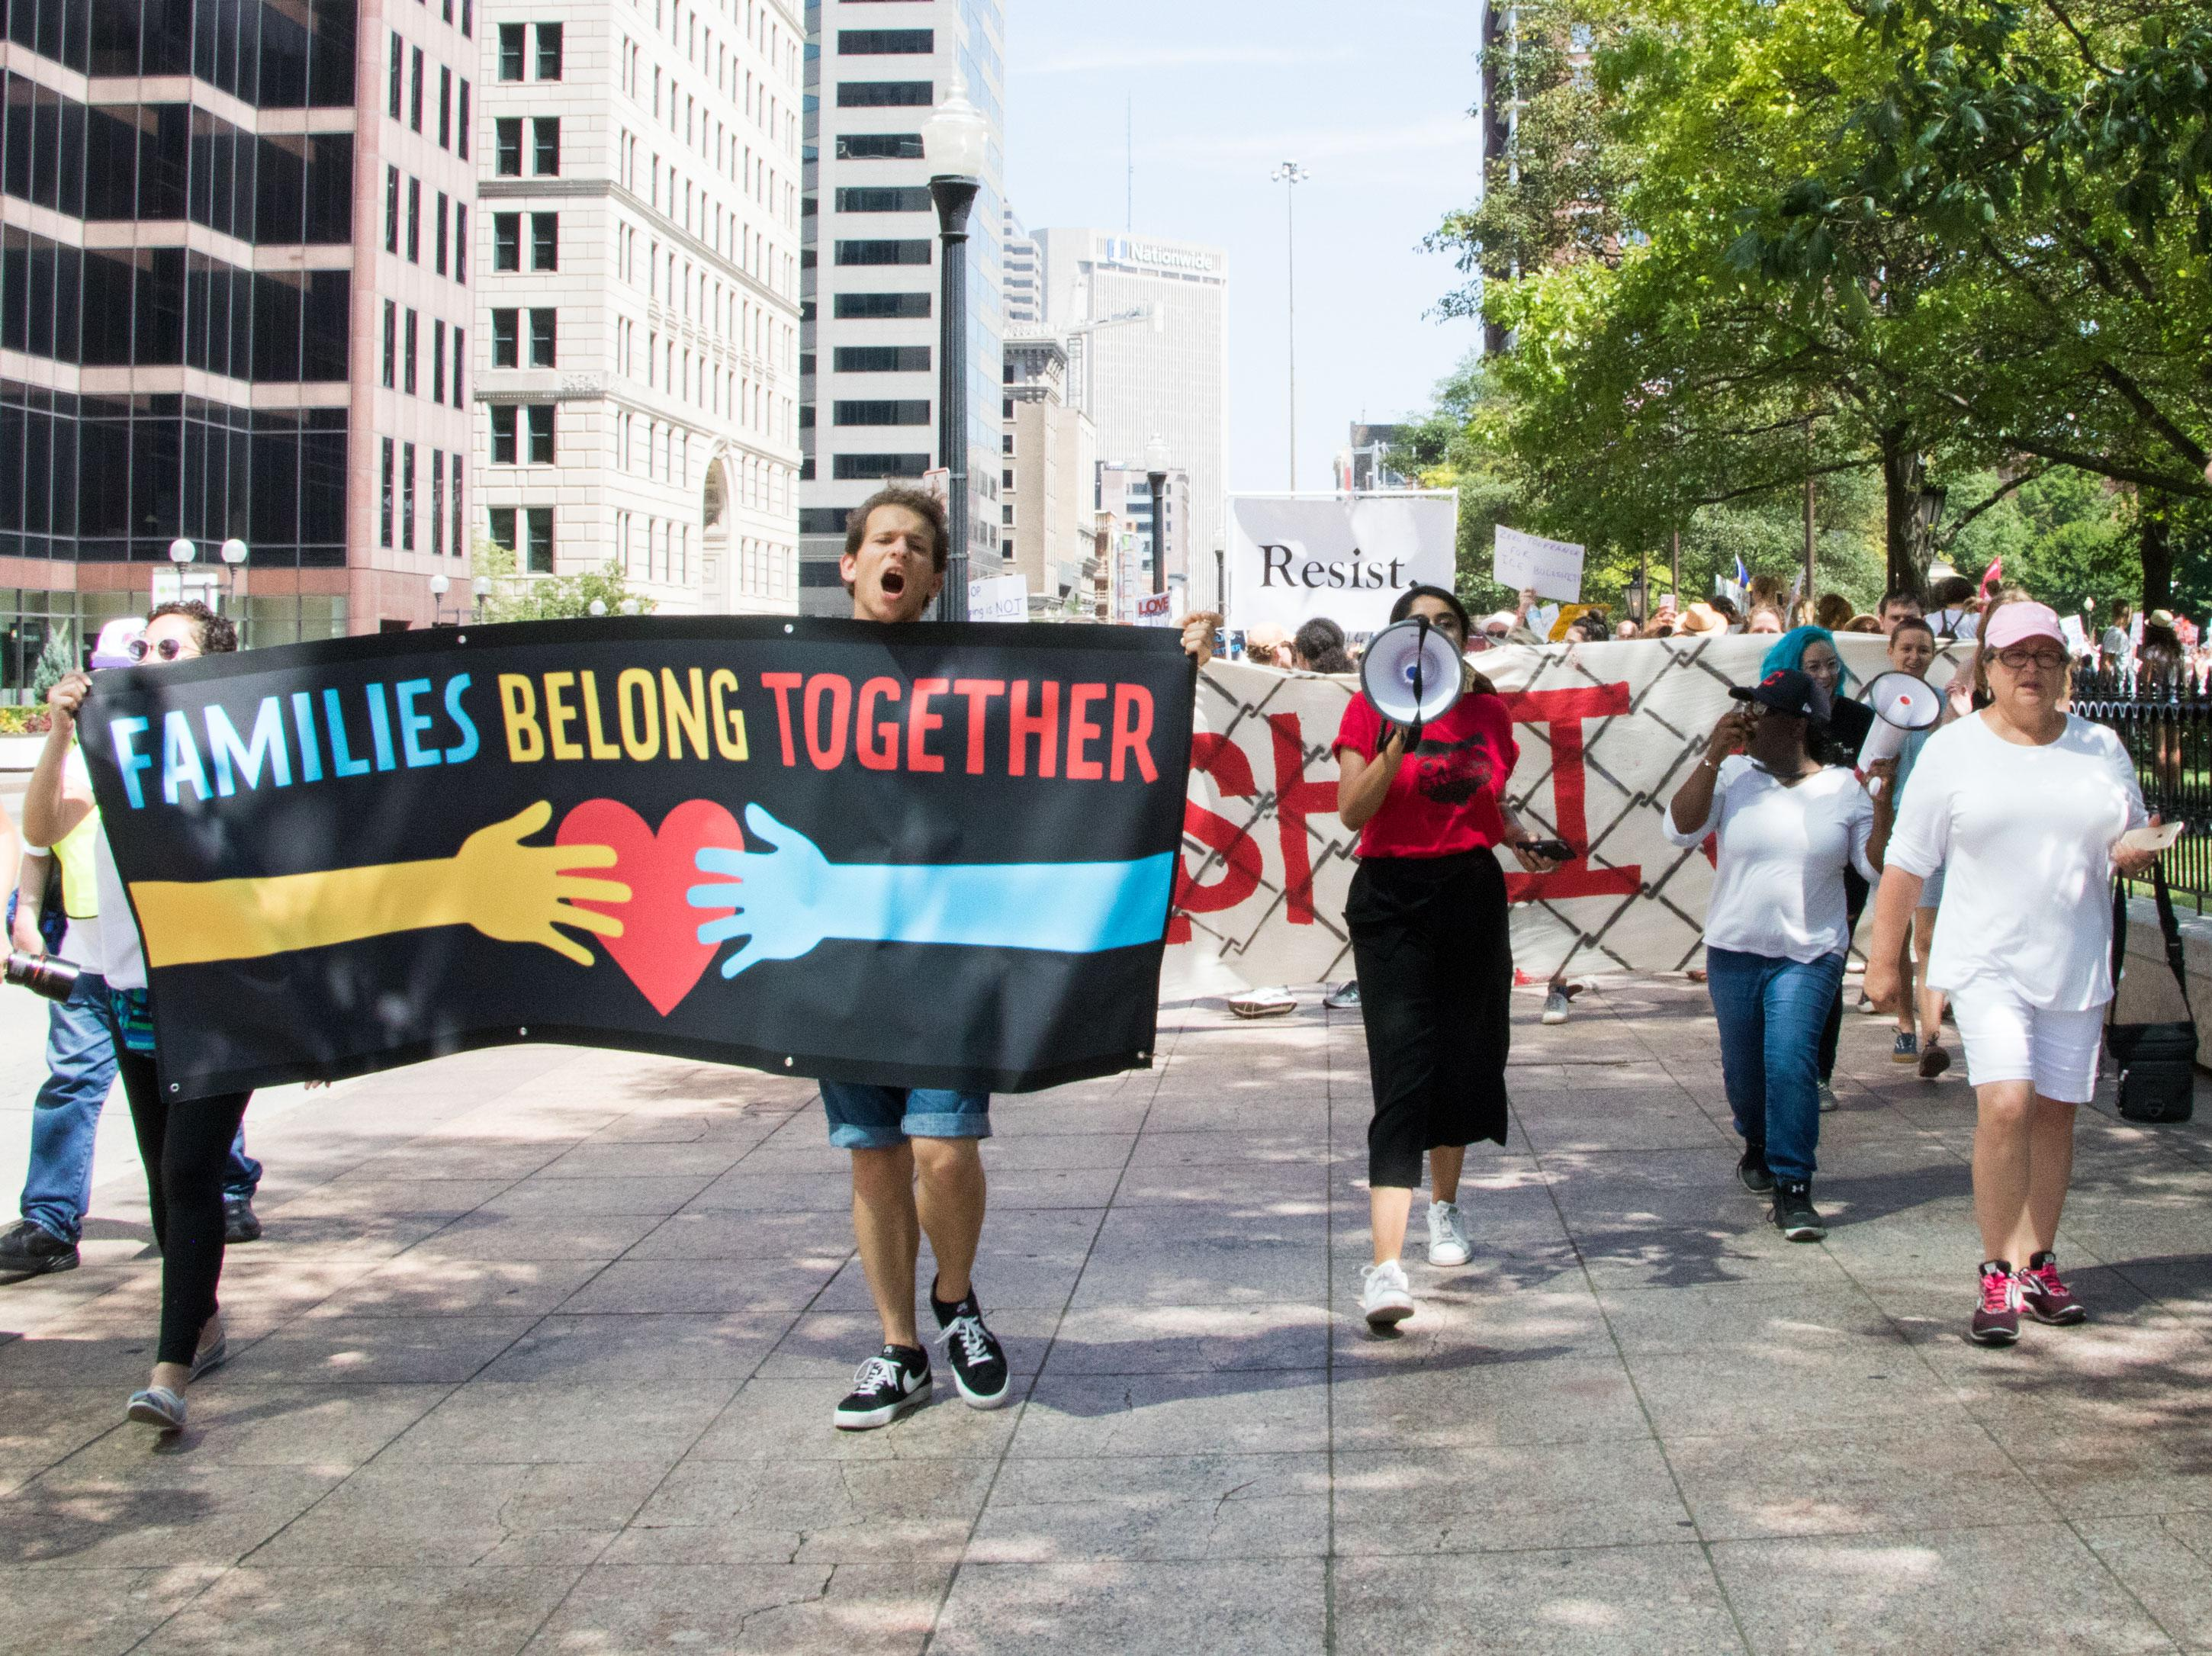 """Families Belong Together"" rally and march in Ohio, June 30, 2018."